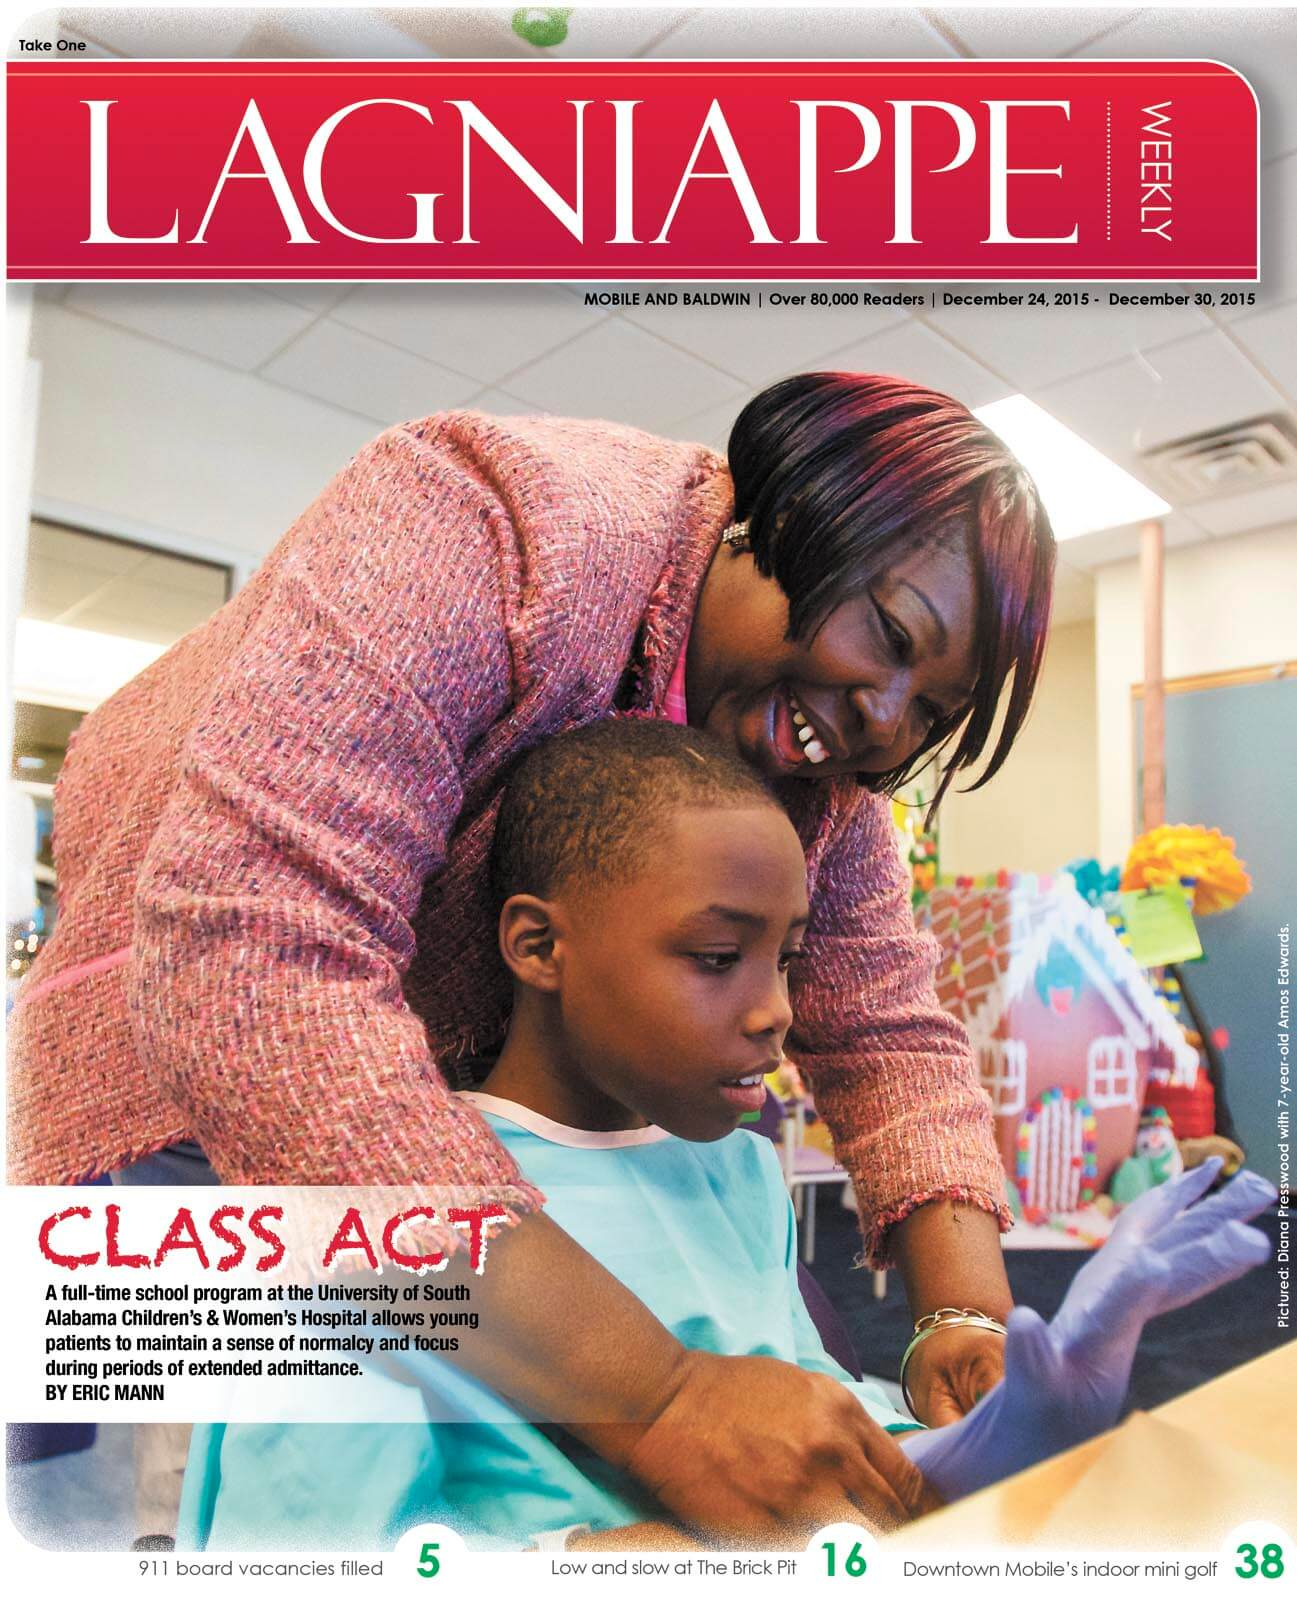 COVER STORY: Class Act teachers give hospitalized children a sense of normalcy